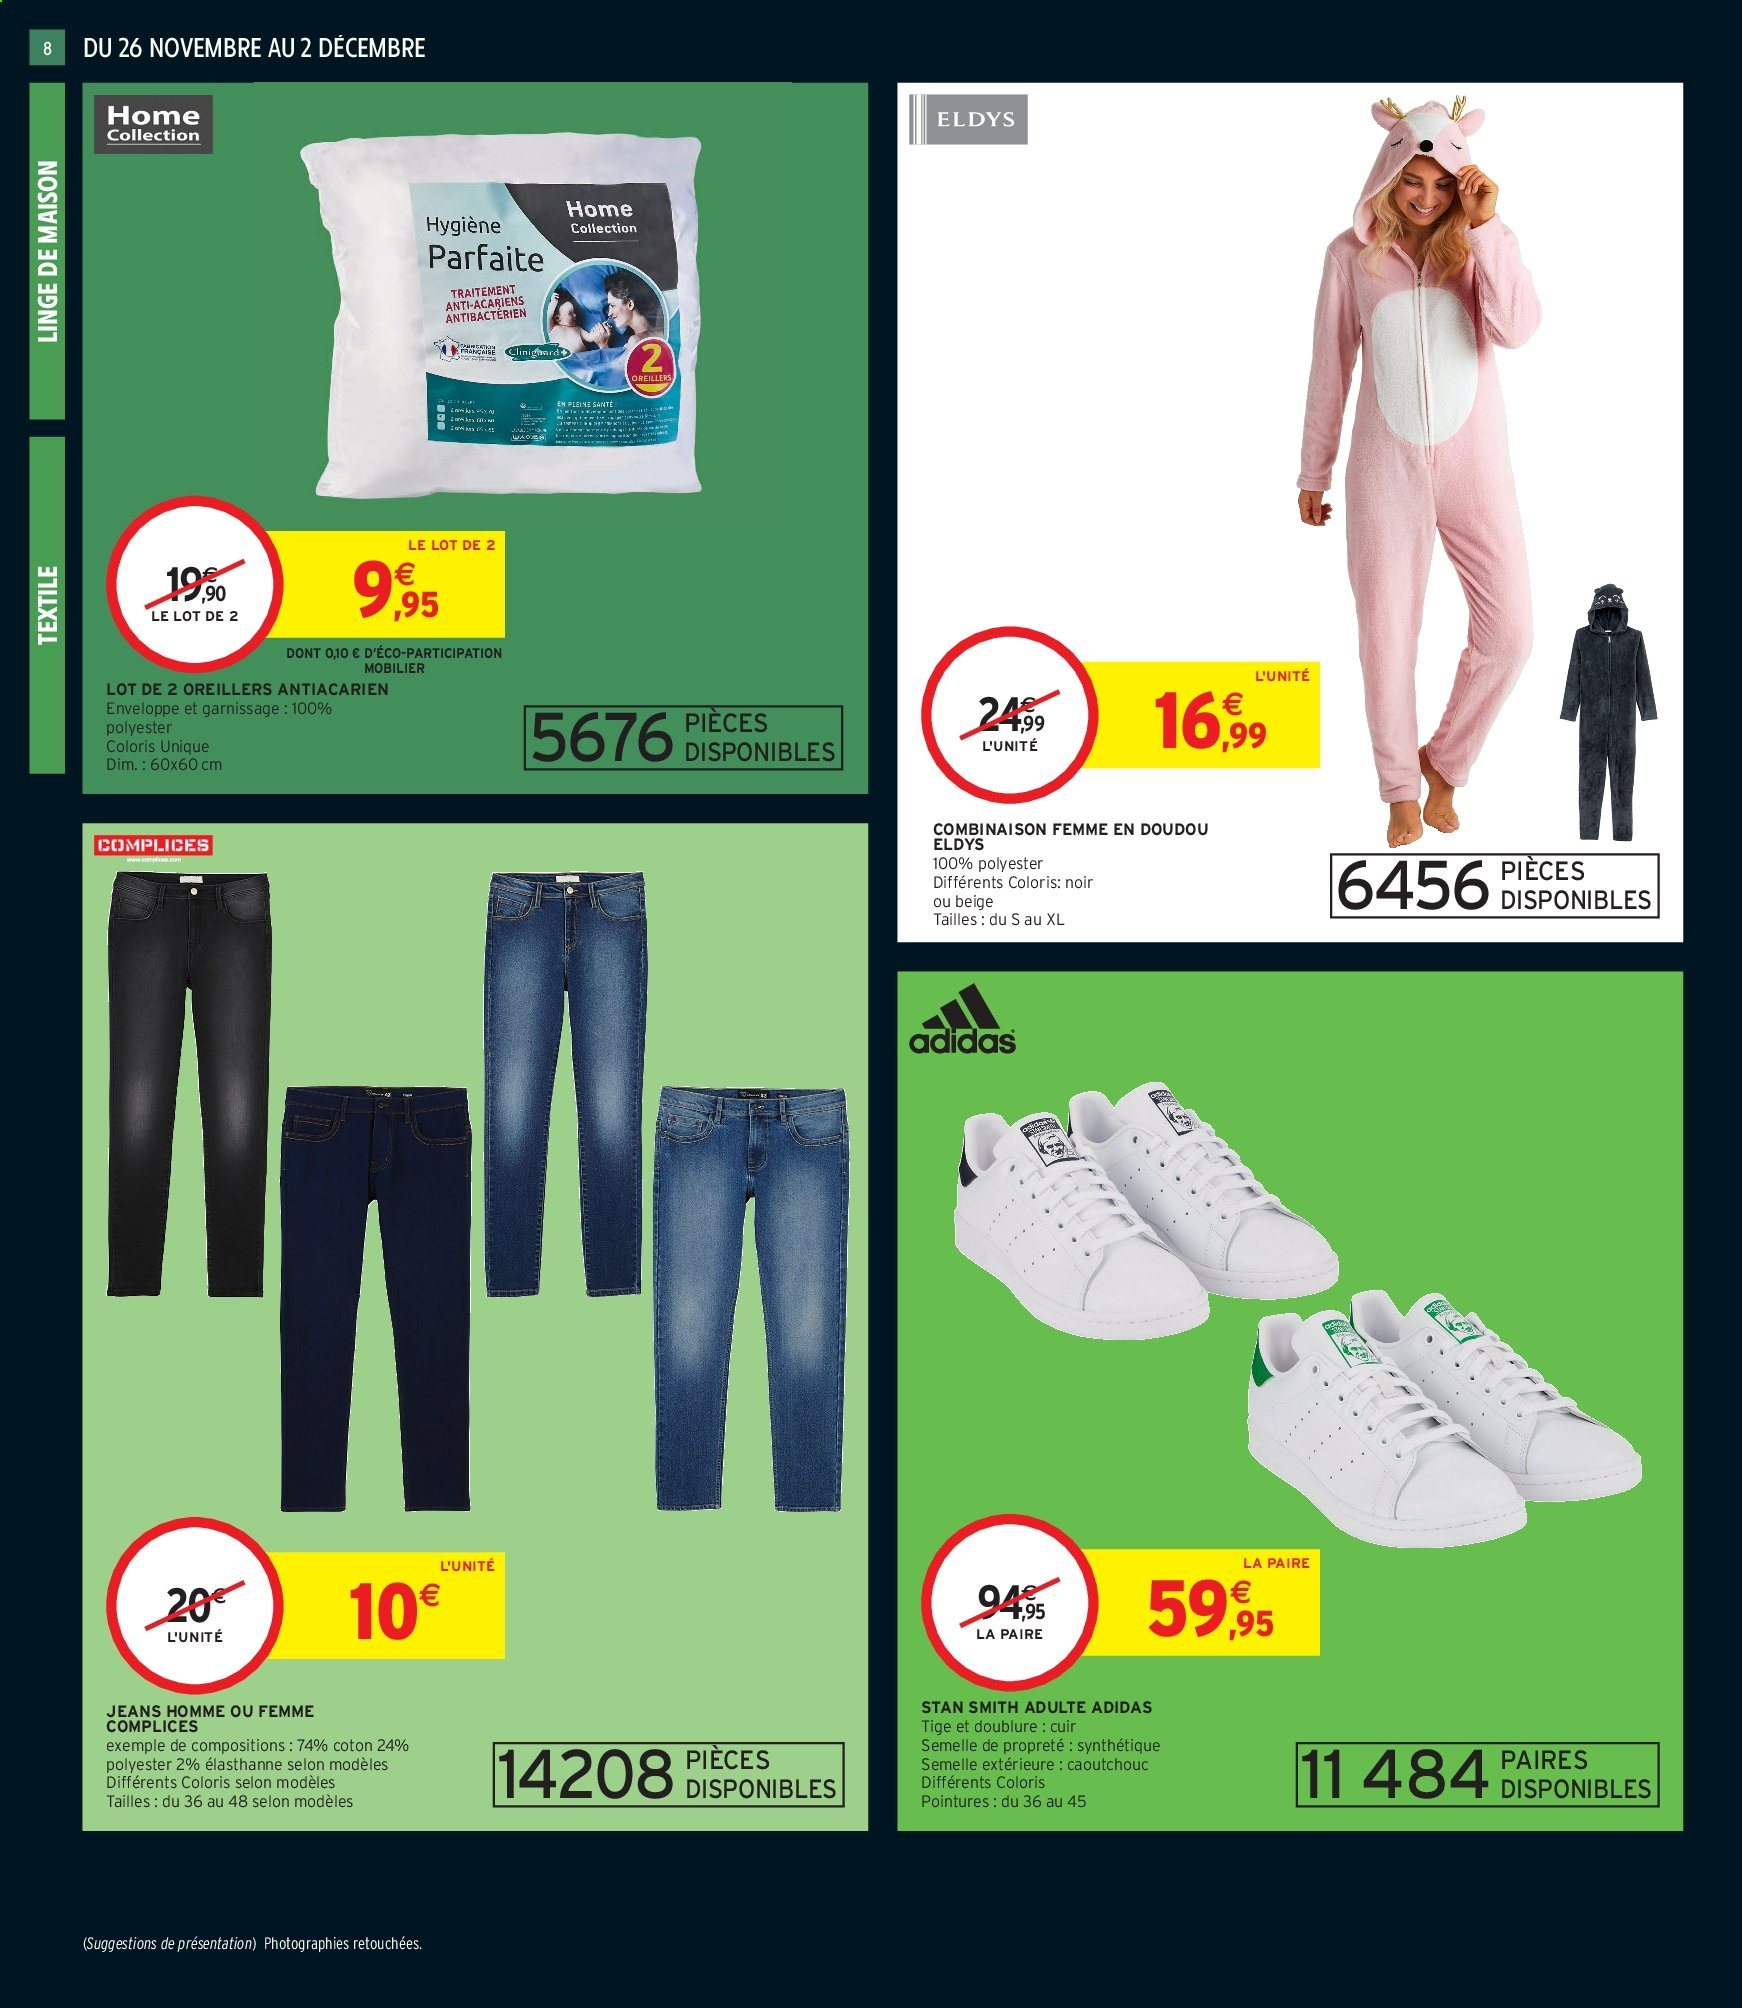 Catalogue Intermarché - 26.11.2019 - 02.12.2019. Page 8.